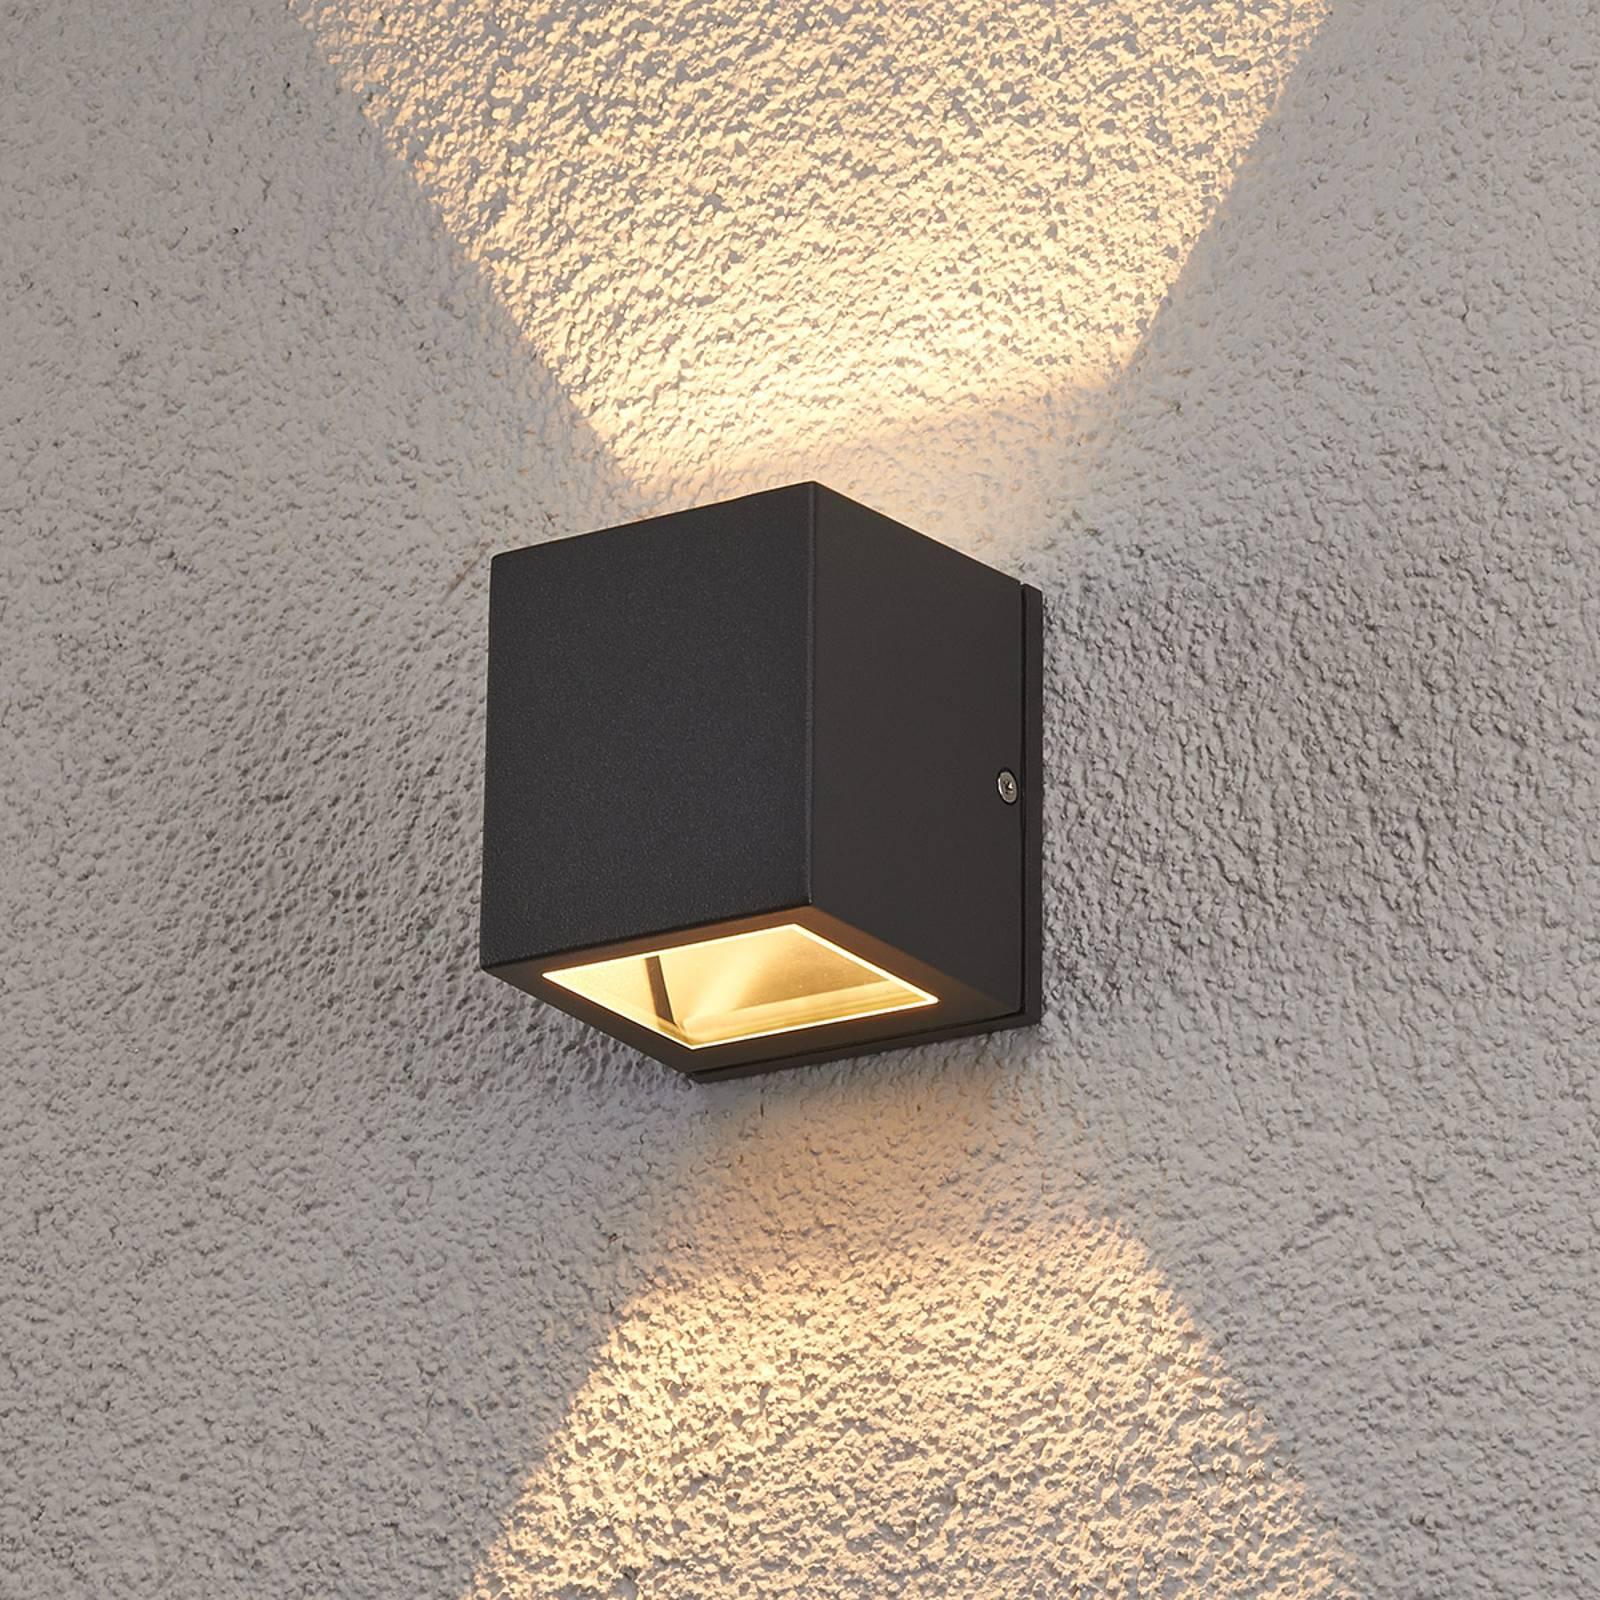 Maurice halogen outdoor wall light, IP54 from Lampenwelt.com